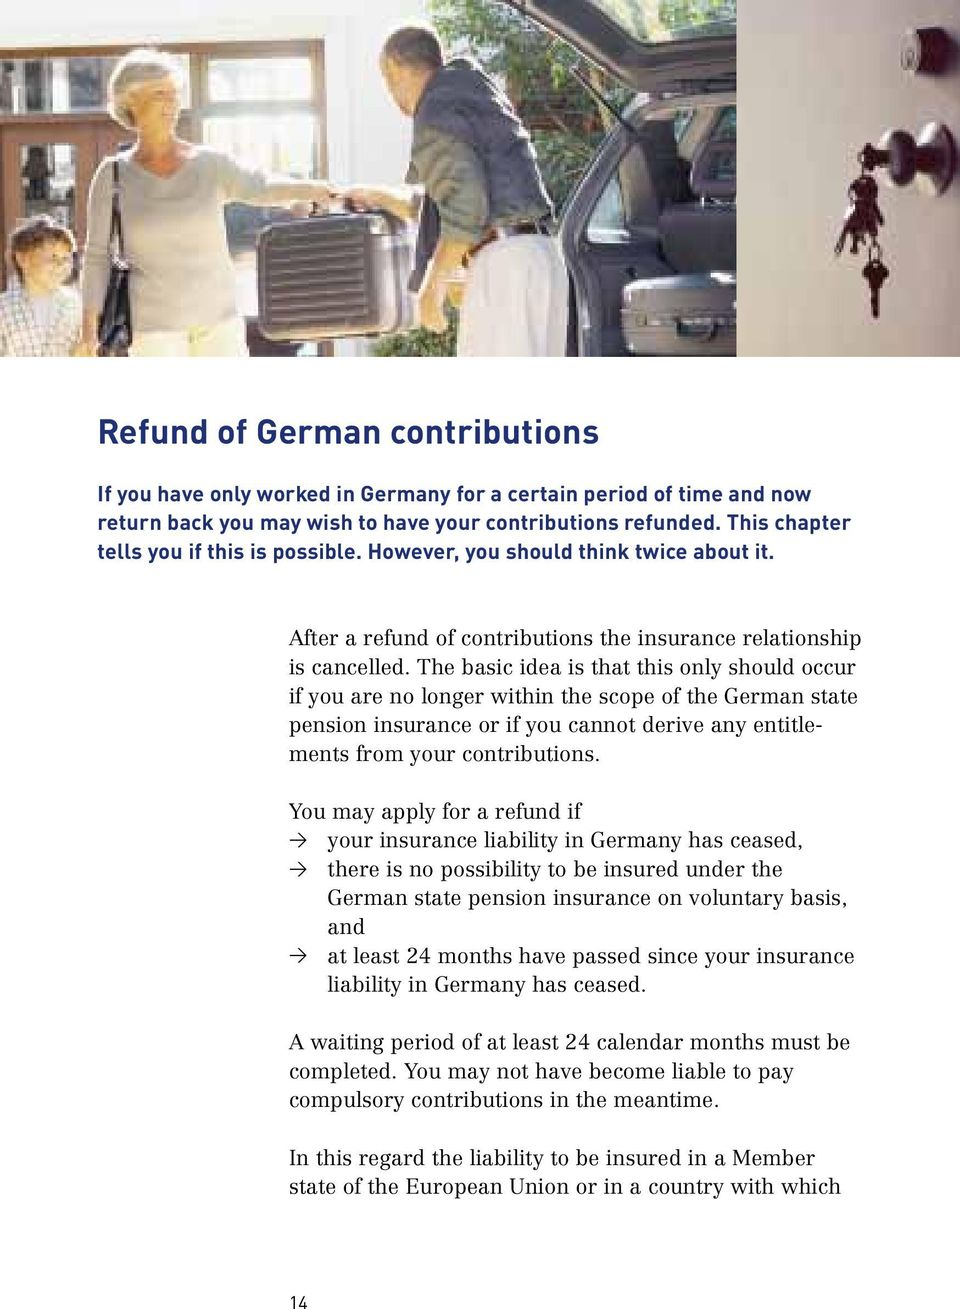 The basic idea is that this only should occur if you are no longer within the scope of the German state pension insurance or if you cannot derive any entitlements from your contributions.